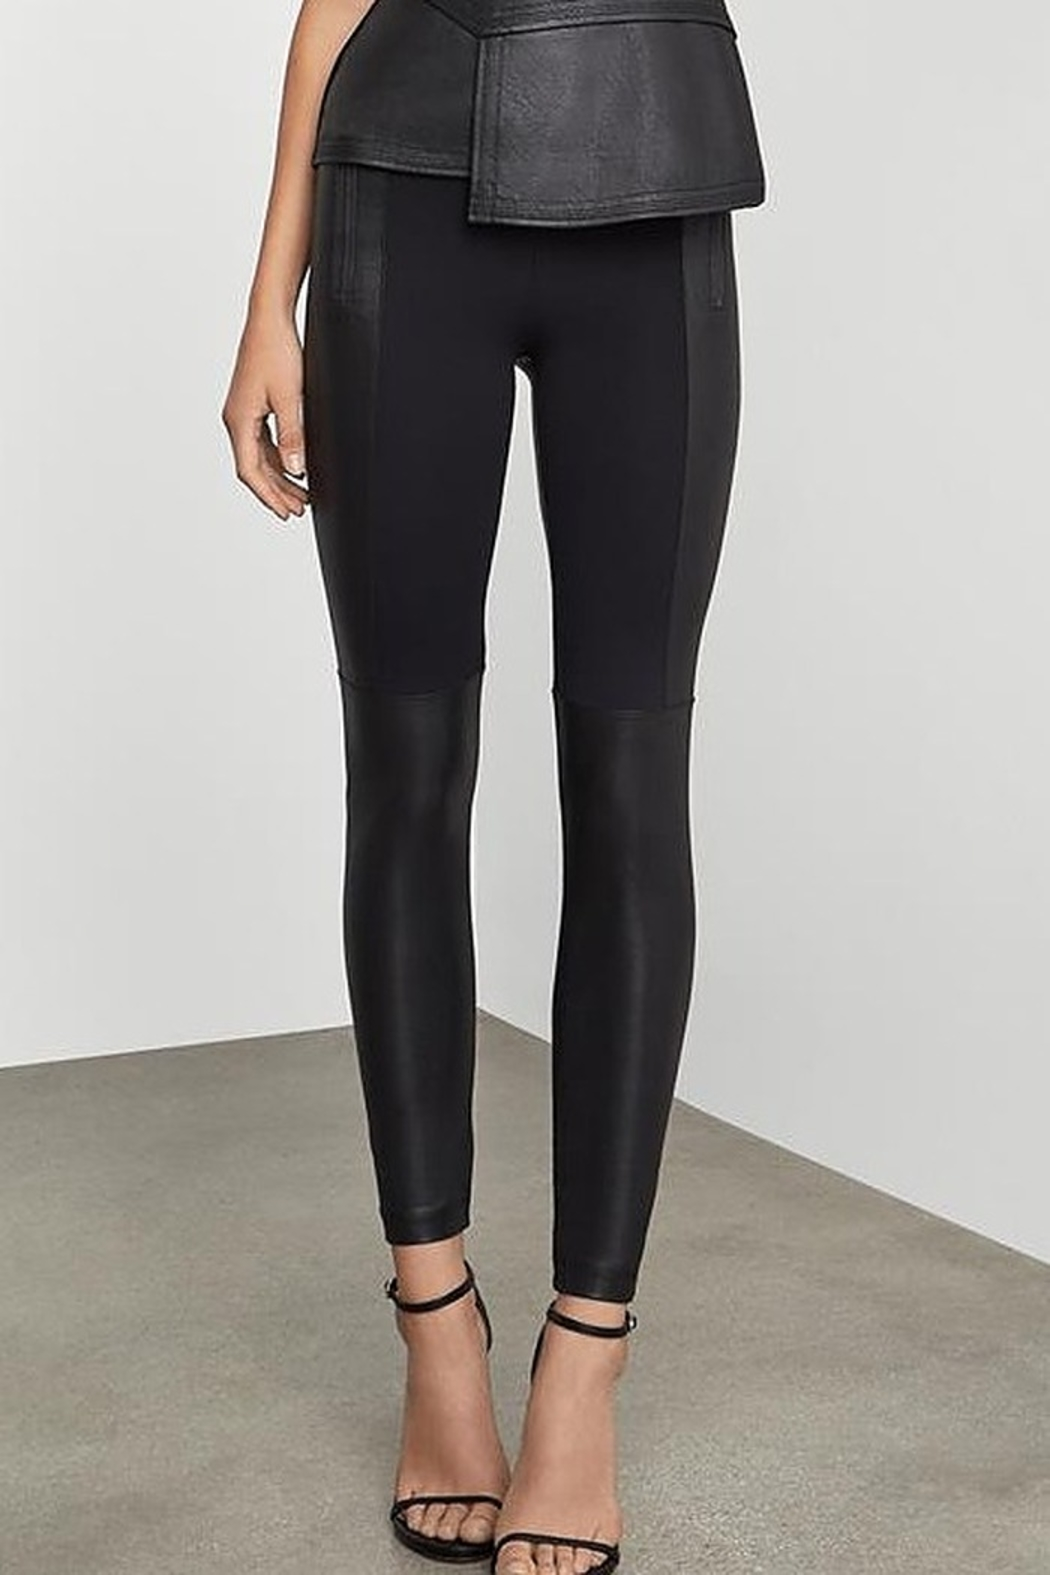 BCBG Max Azria Two Tone Coated Leggings - Front Cropped Image